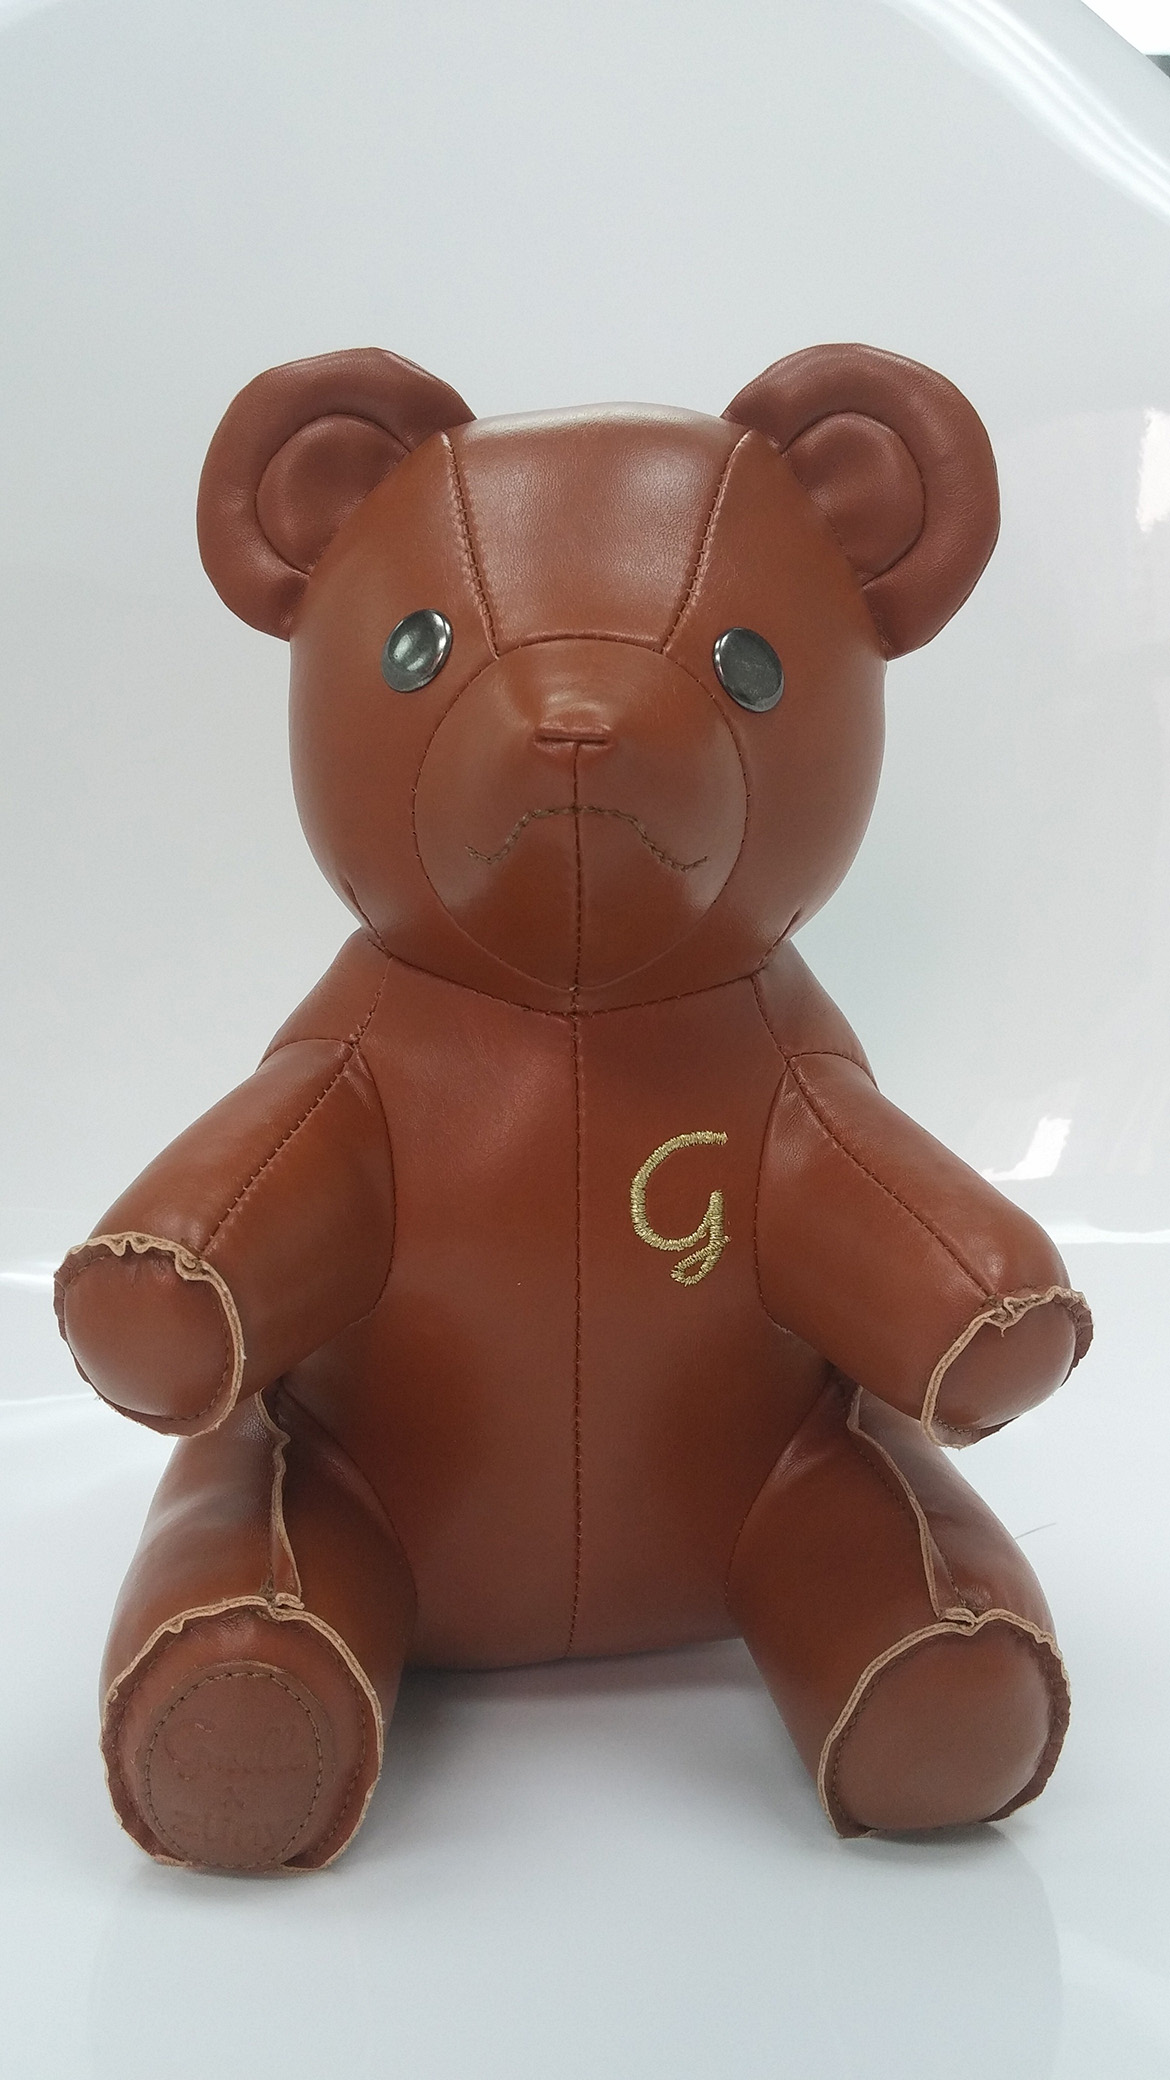 Gusella Teddy Collection